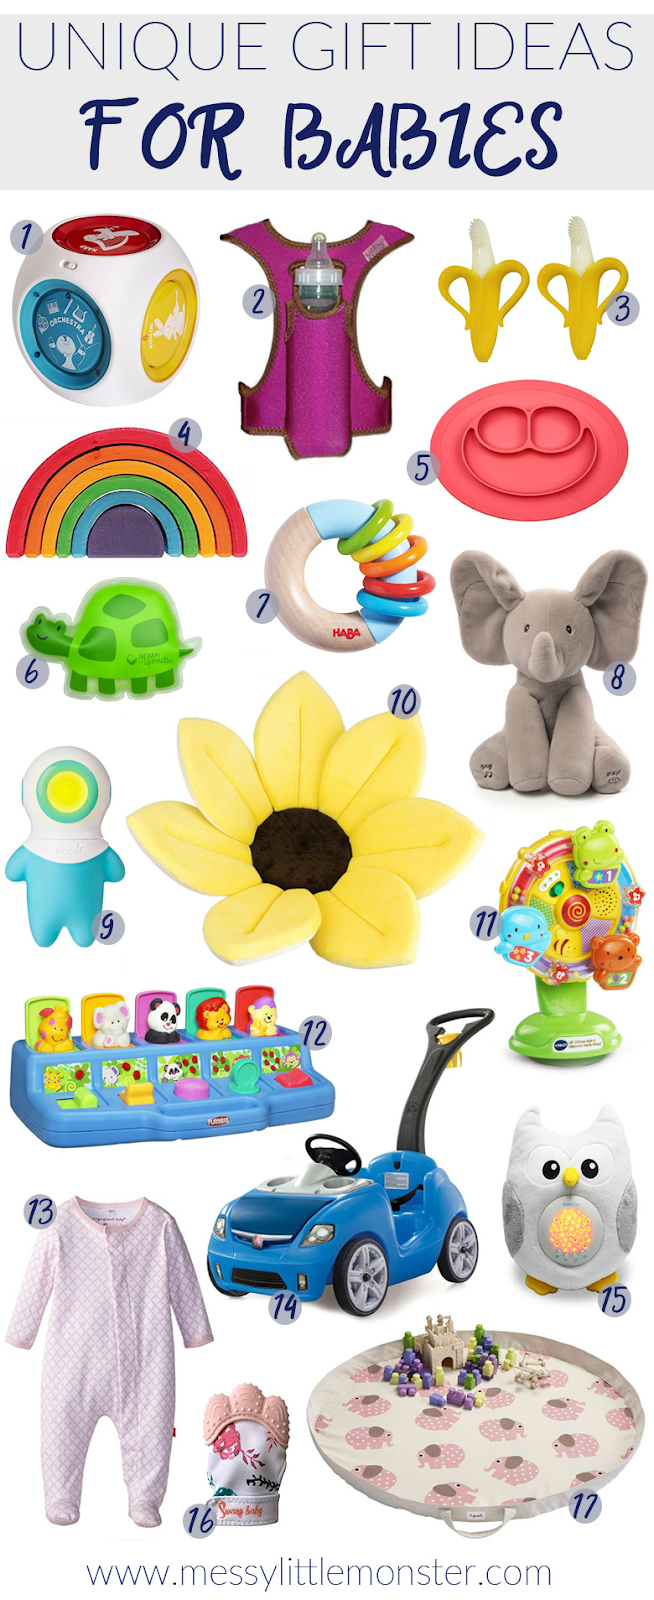 Unique gift ideas for babies. 17 unique baby gifts you will love! Some stocking fillers for babies and some larger out of the ordinary baby gift ideas.